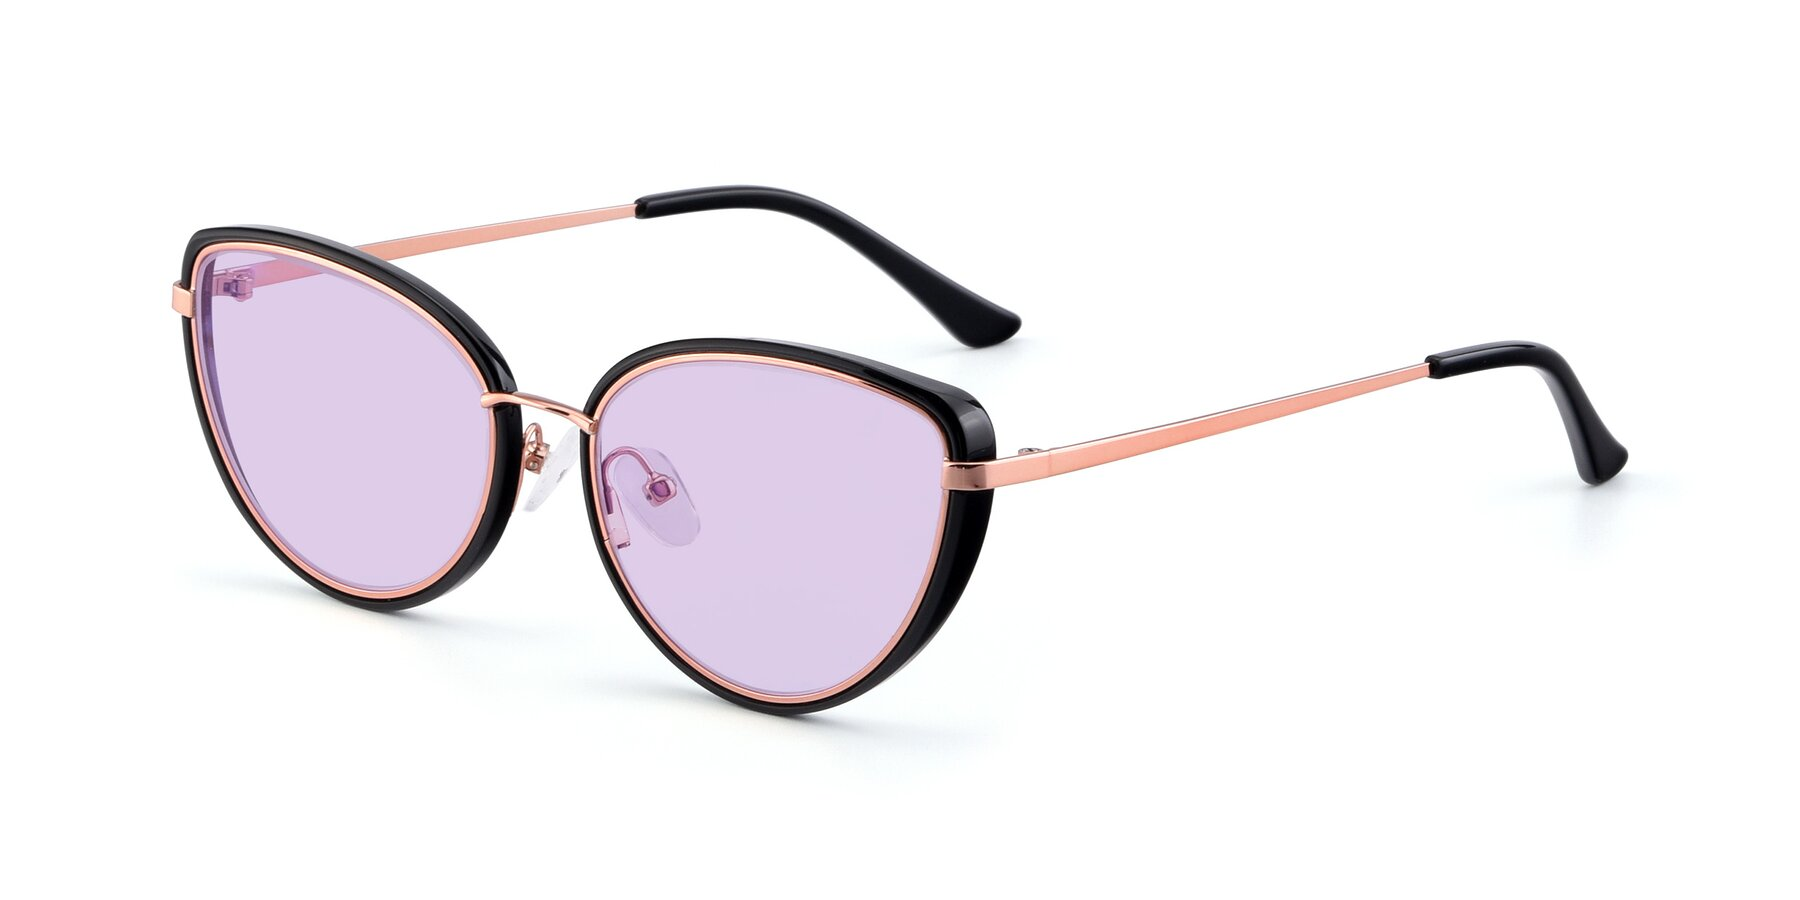 Angle of 17706 in Black-Rose Gold with Light Purple Tinted Lenses